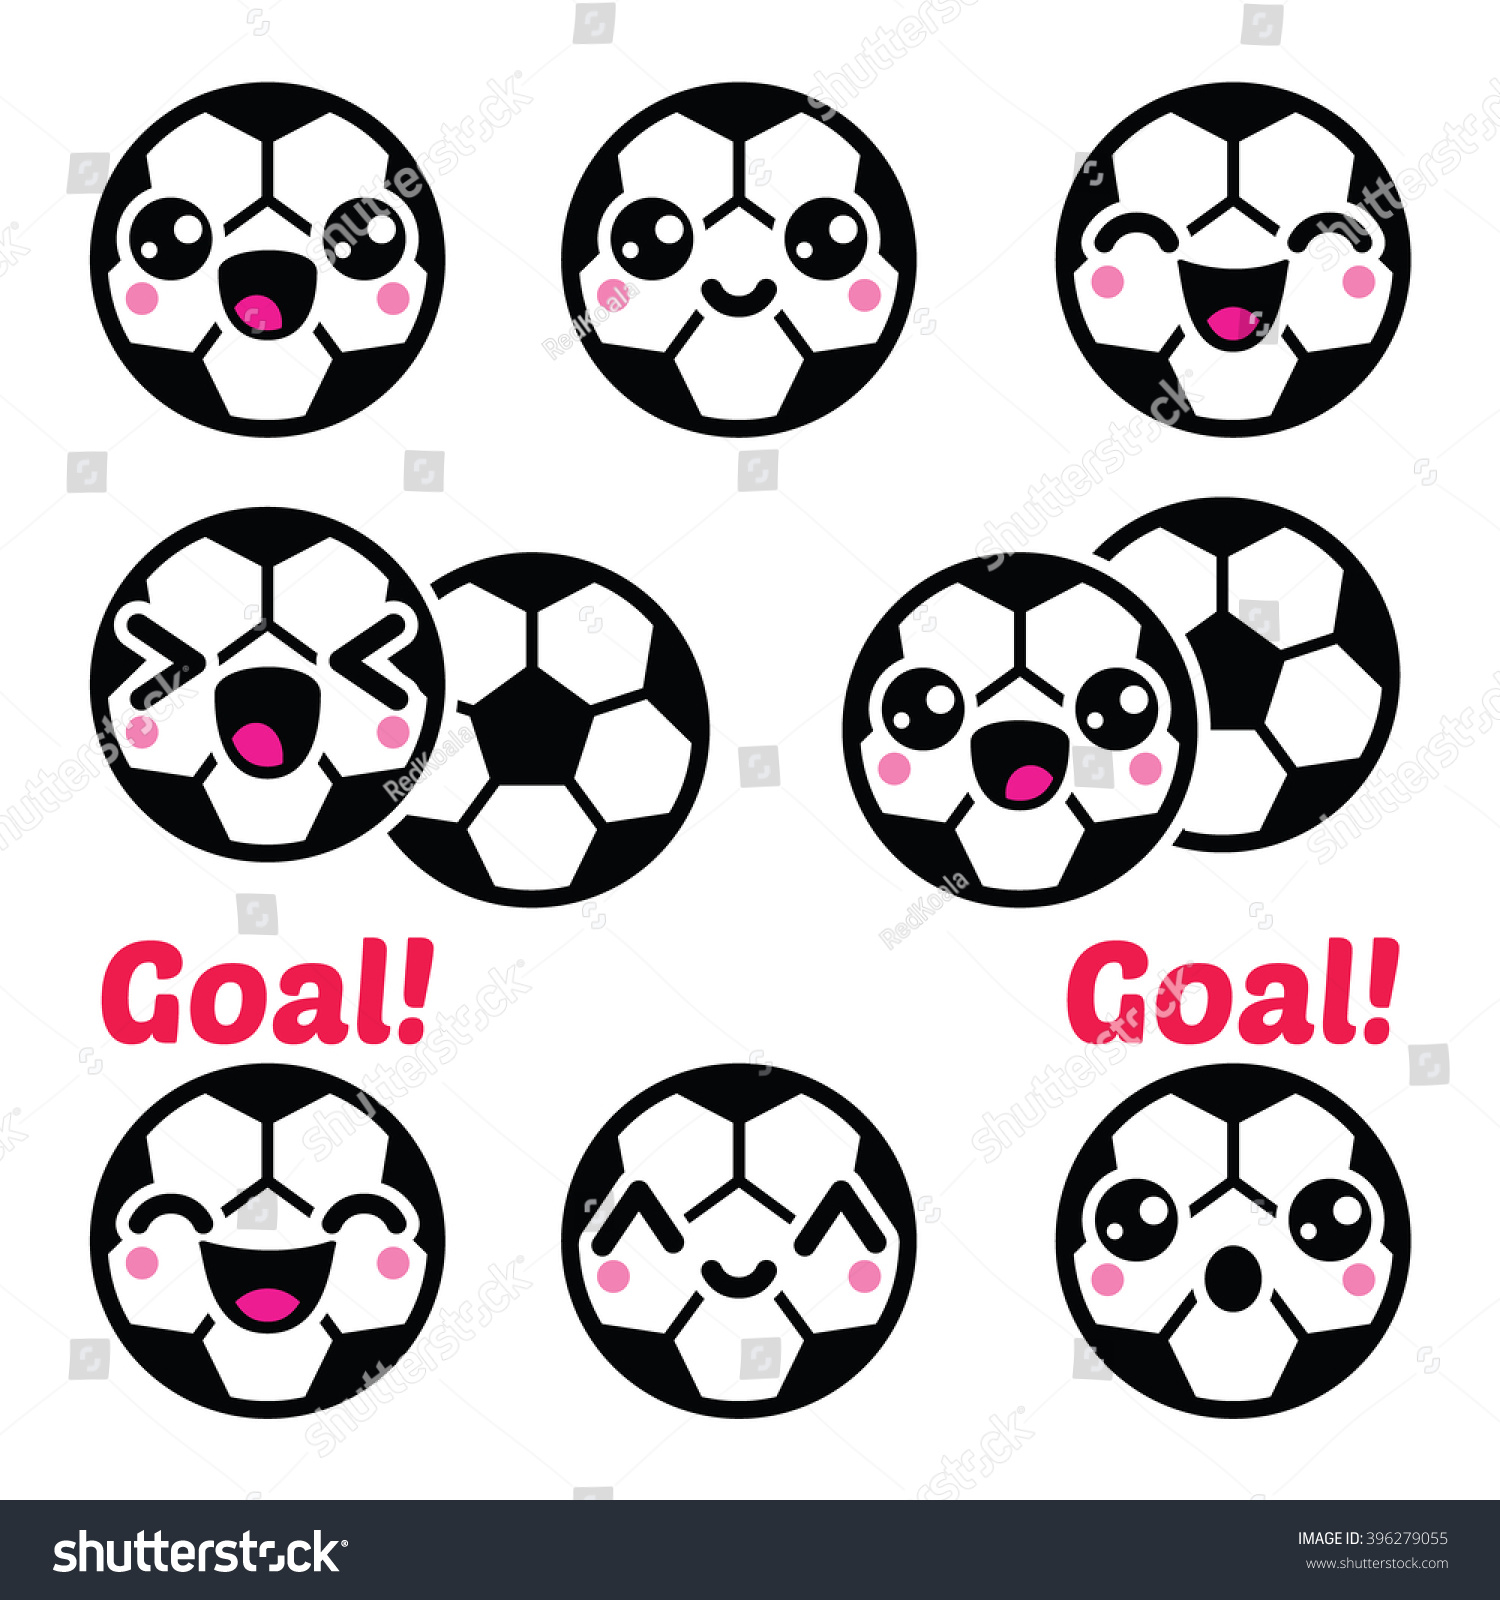 Stock Photo Amazed Little Baby Blanket Mouth Wide Open Image63735265 besides Stock Vector Kawaii Soccer Ball Football Icons Set moreover Dental  ics Humor Jokes Br ton Dentists additionally New Nhs Dental Charges April 2015 furthermore How To Draw A Killer Klown. on big mouth smile